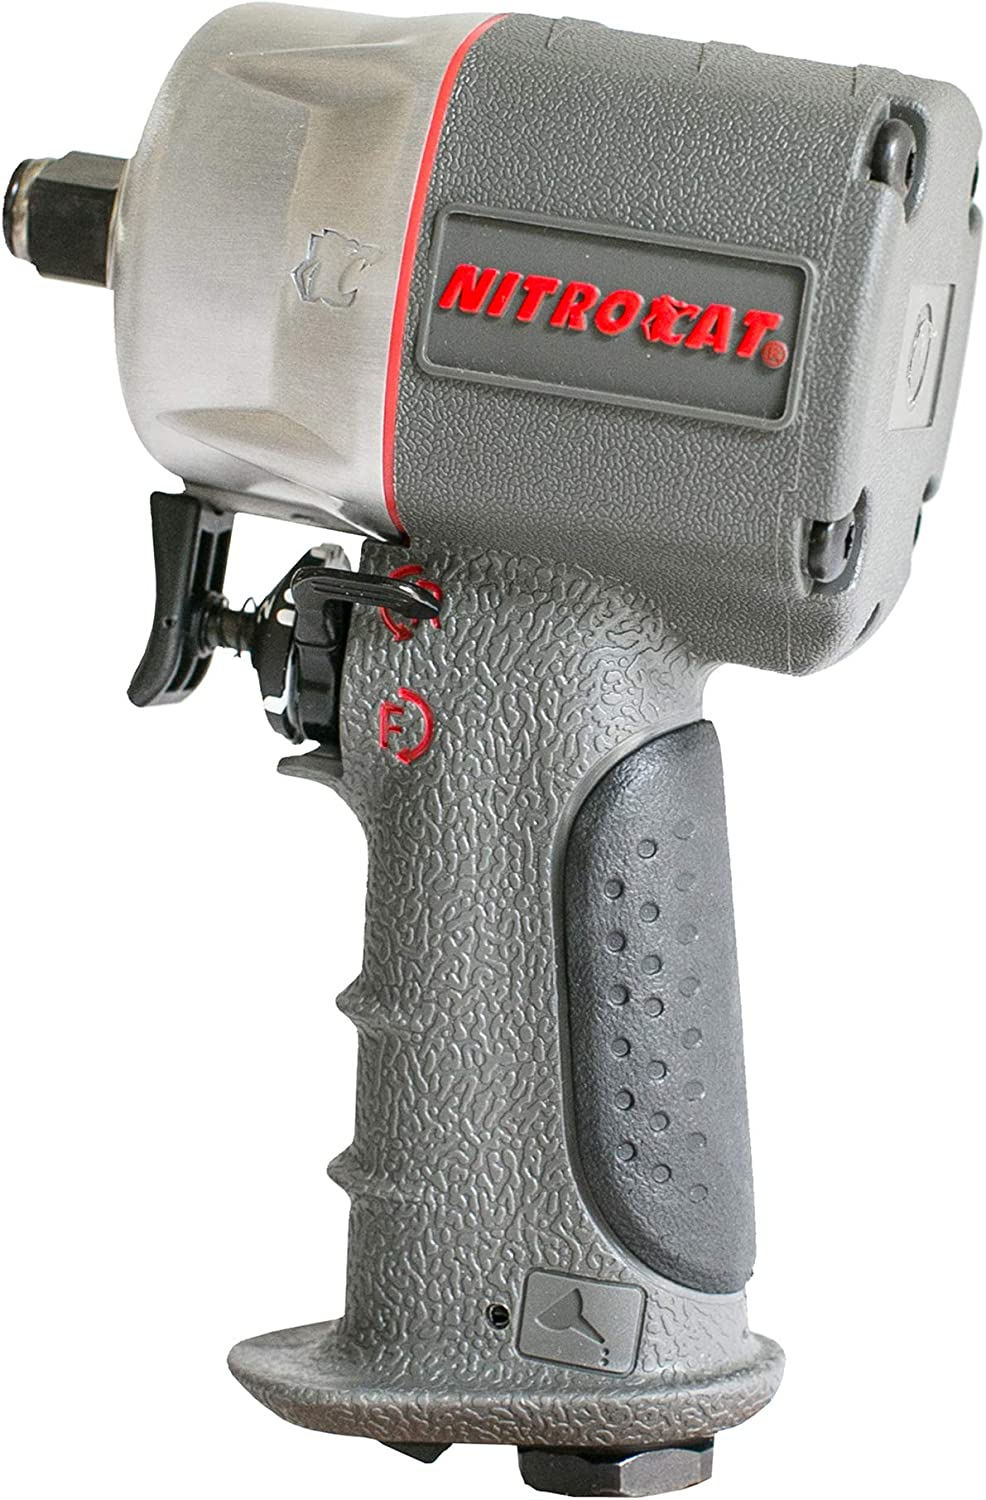 AIRCAT 1076-XL 3/8-Inch Compact Composite